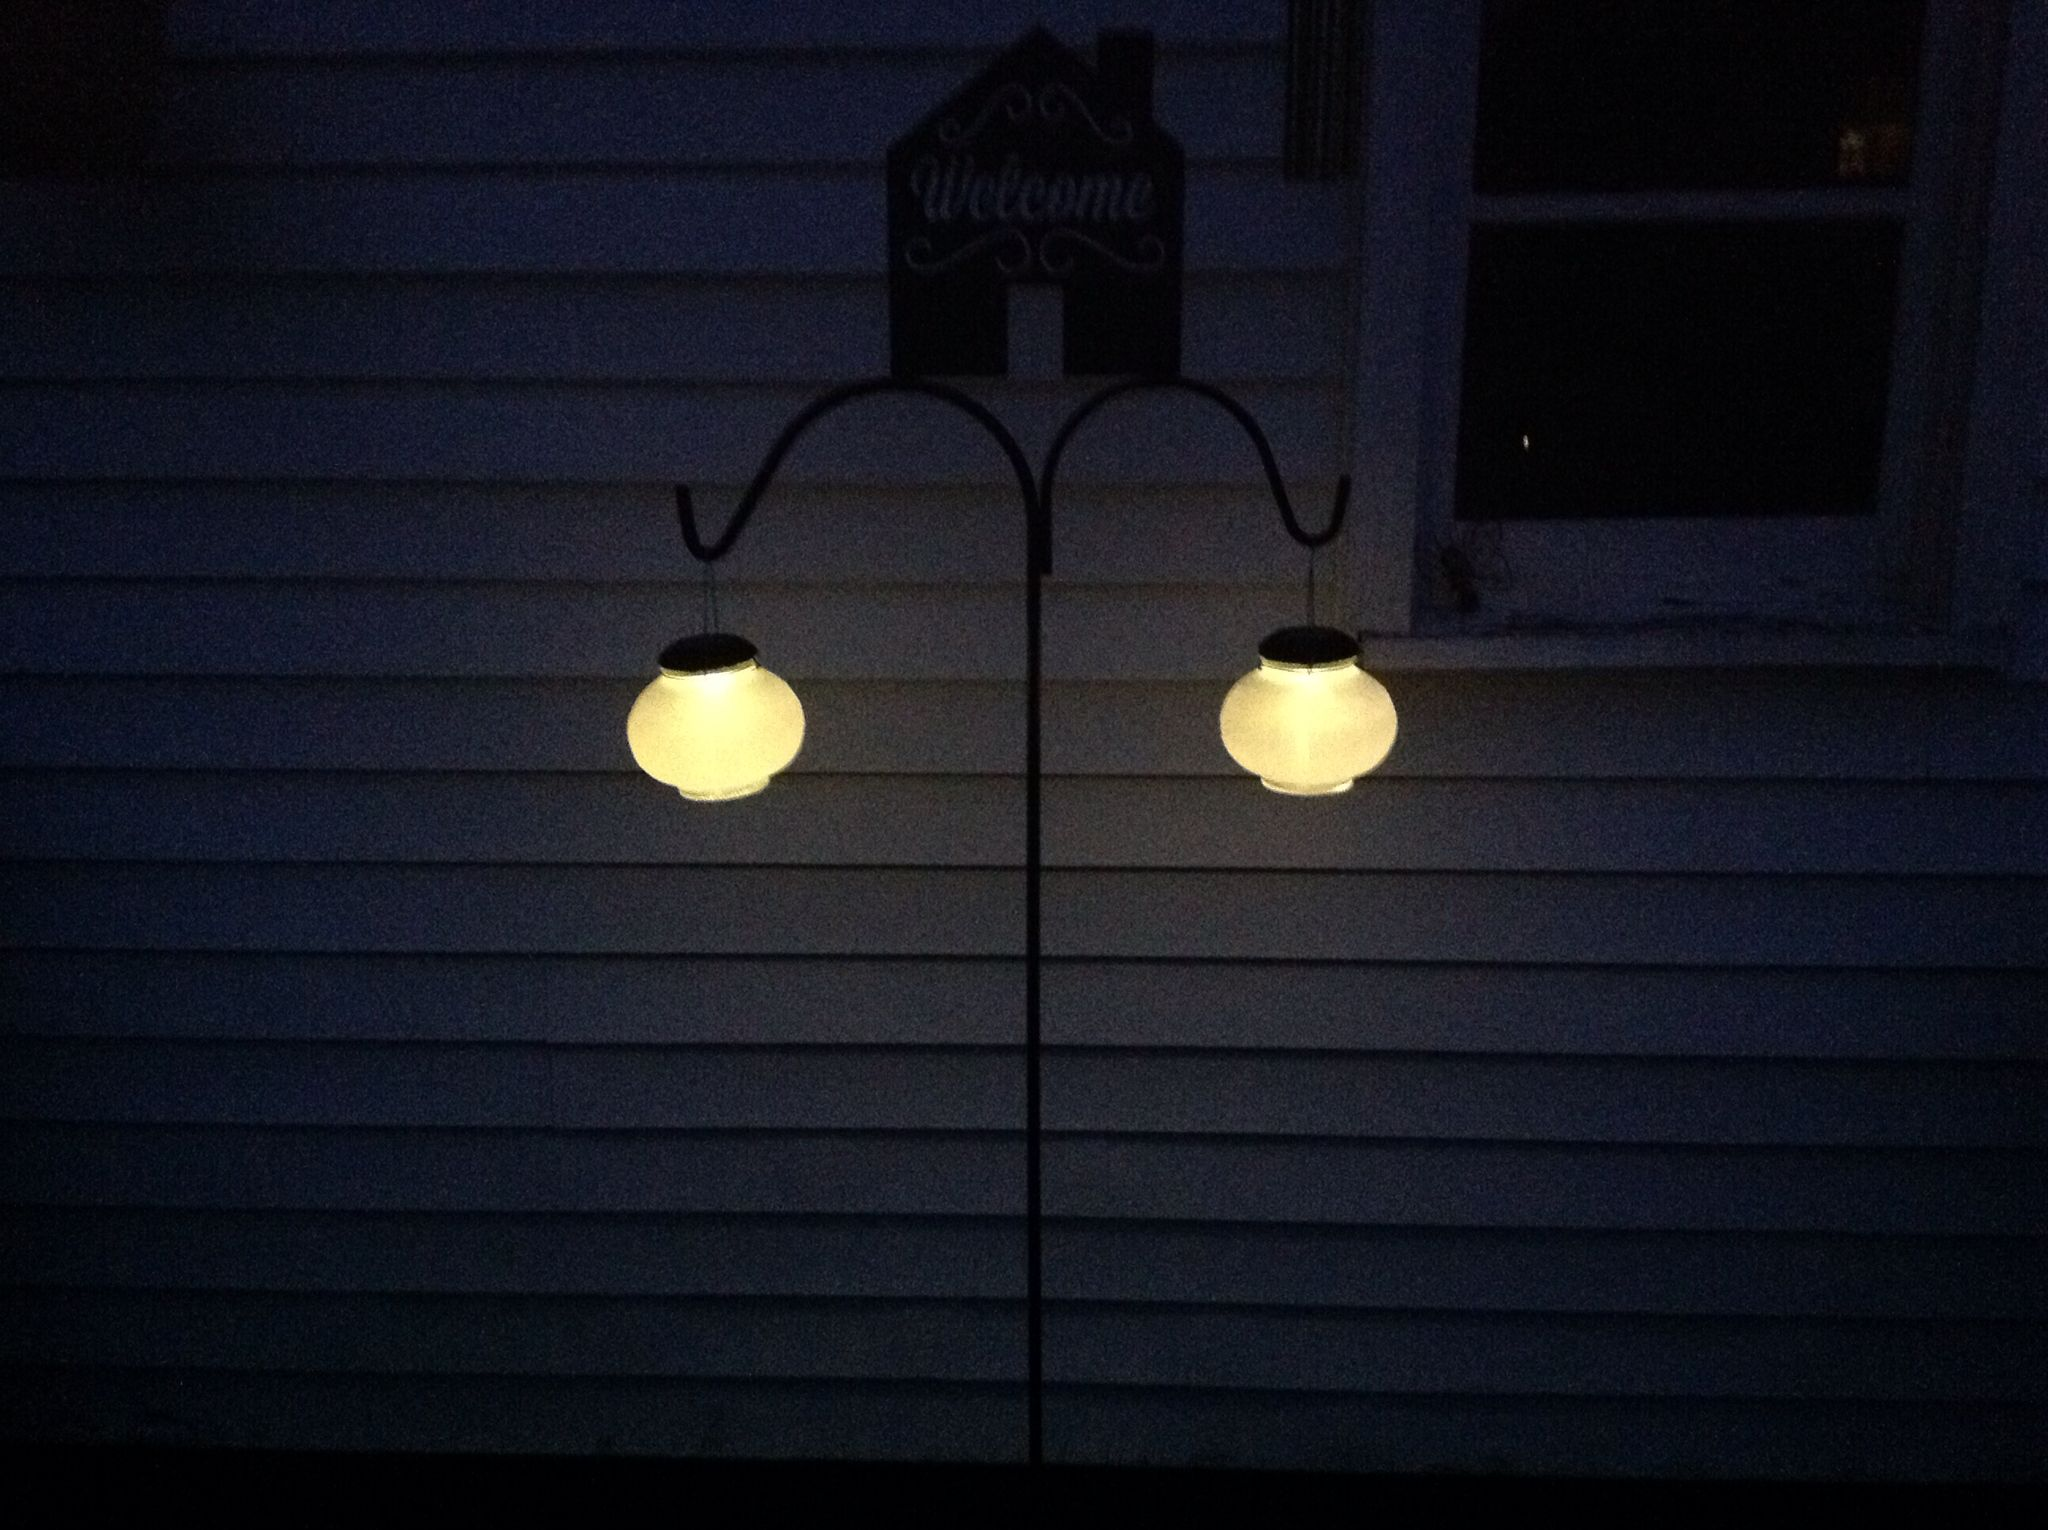 Outdoor Solar Lights Lowes Mesmerizing $2 Glass Light Globes From Habitat Restore  $298 Solar Lights From